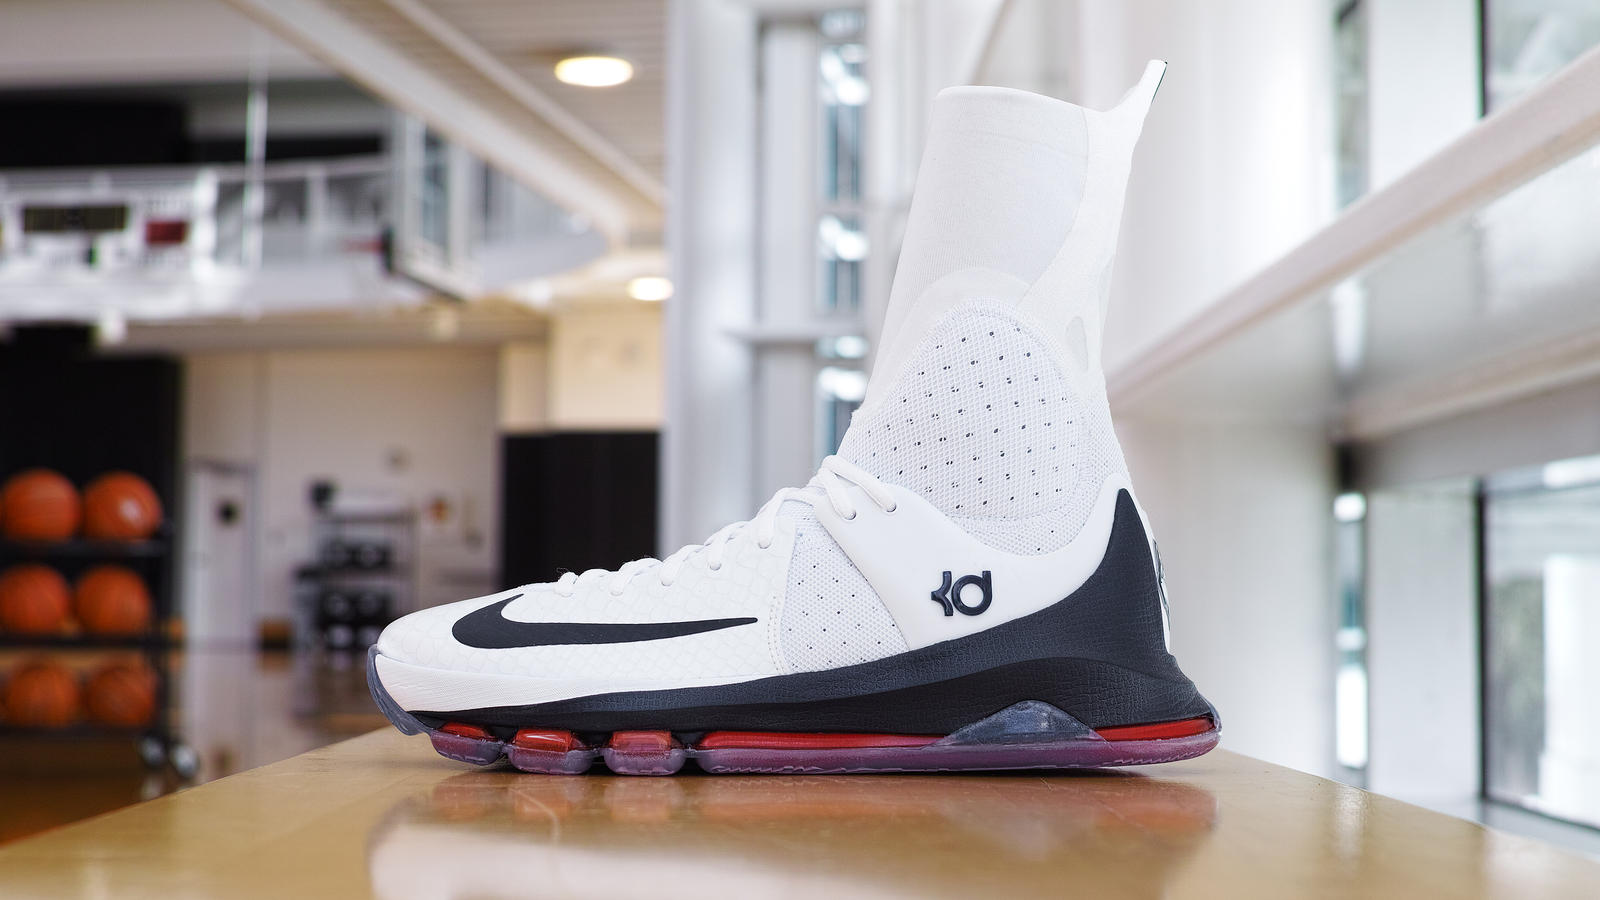 Real Nike KD 8 Elite For Cheap Connecticut PE